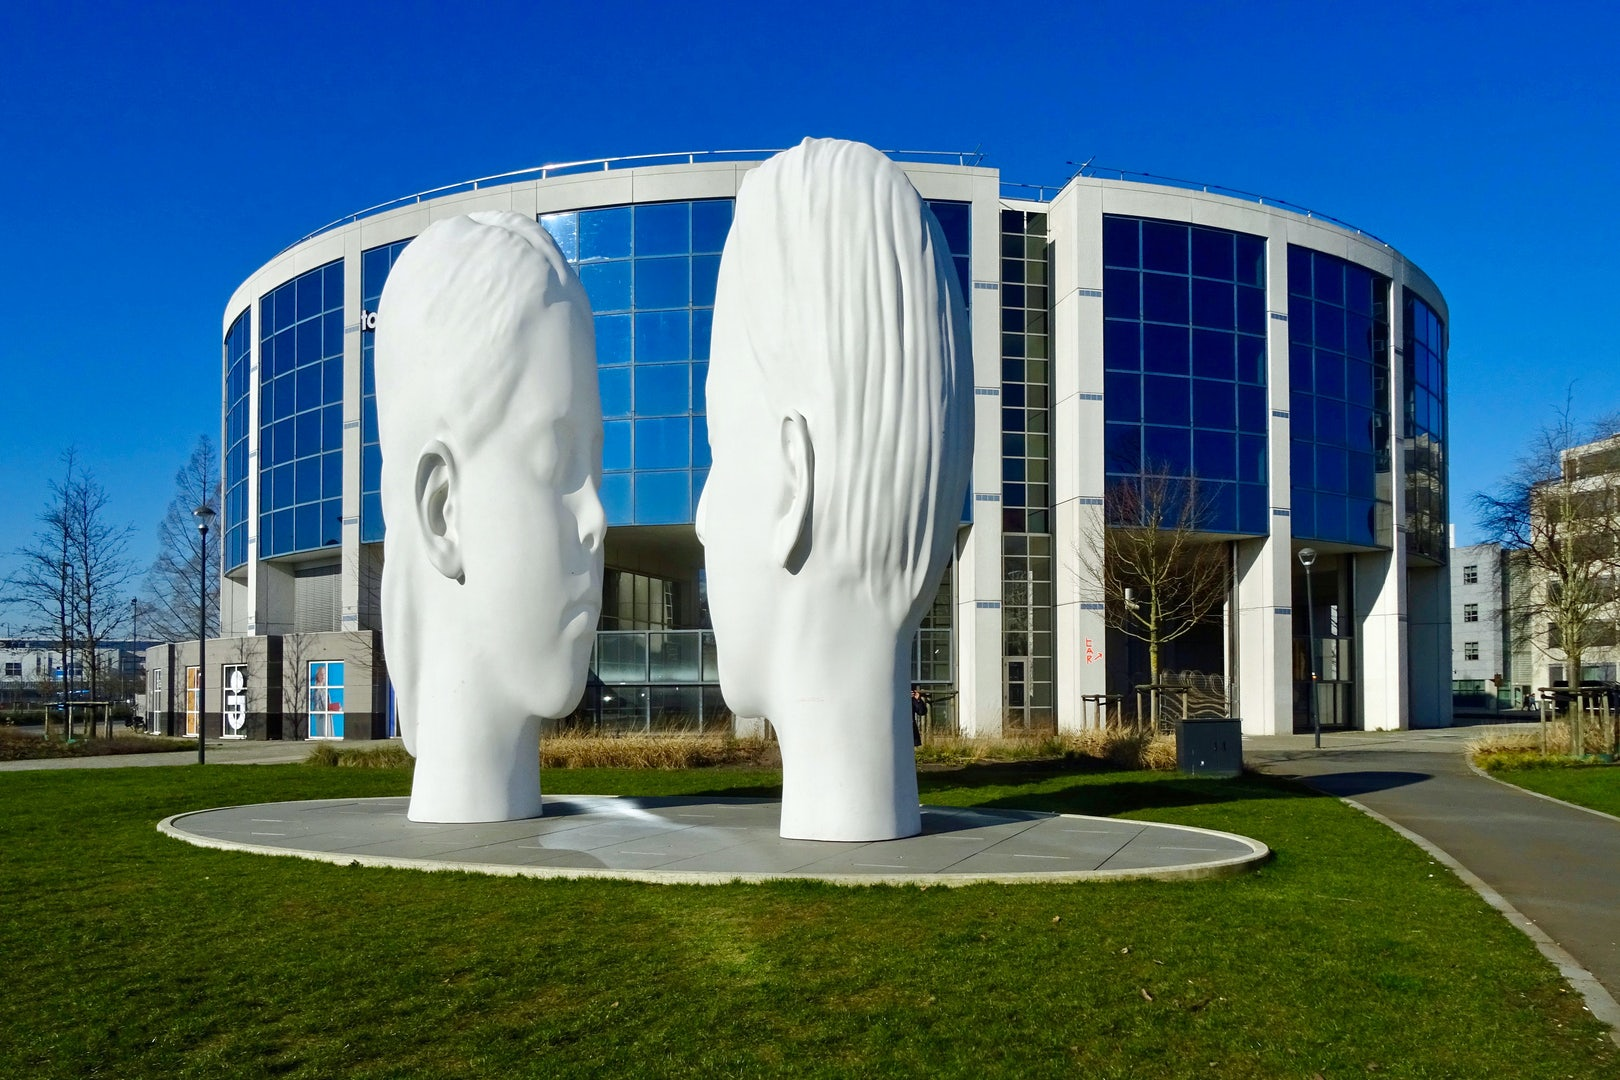 the Love sculpture by Jaume Plensa